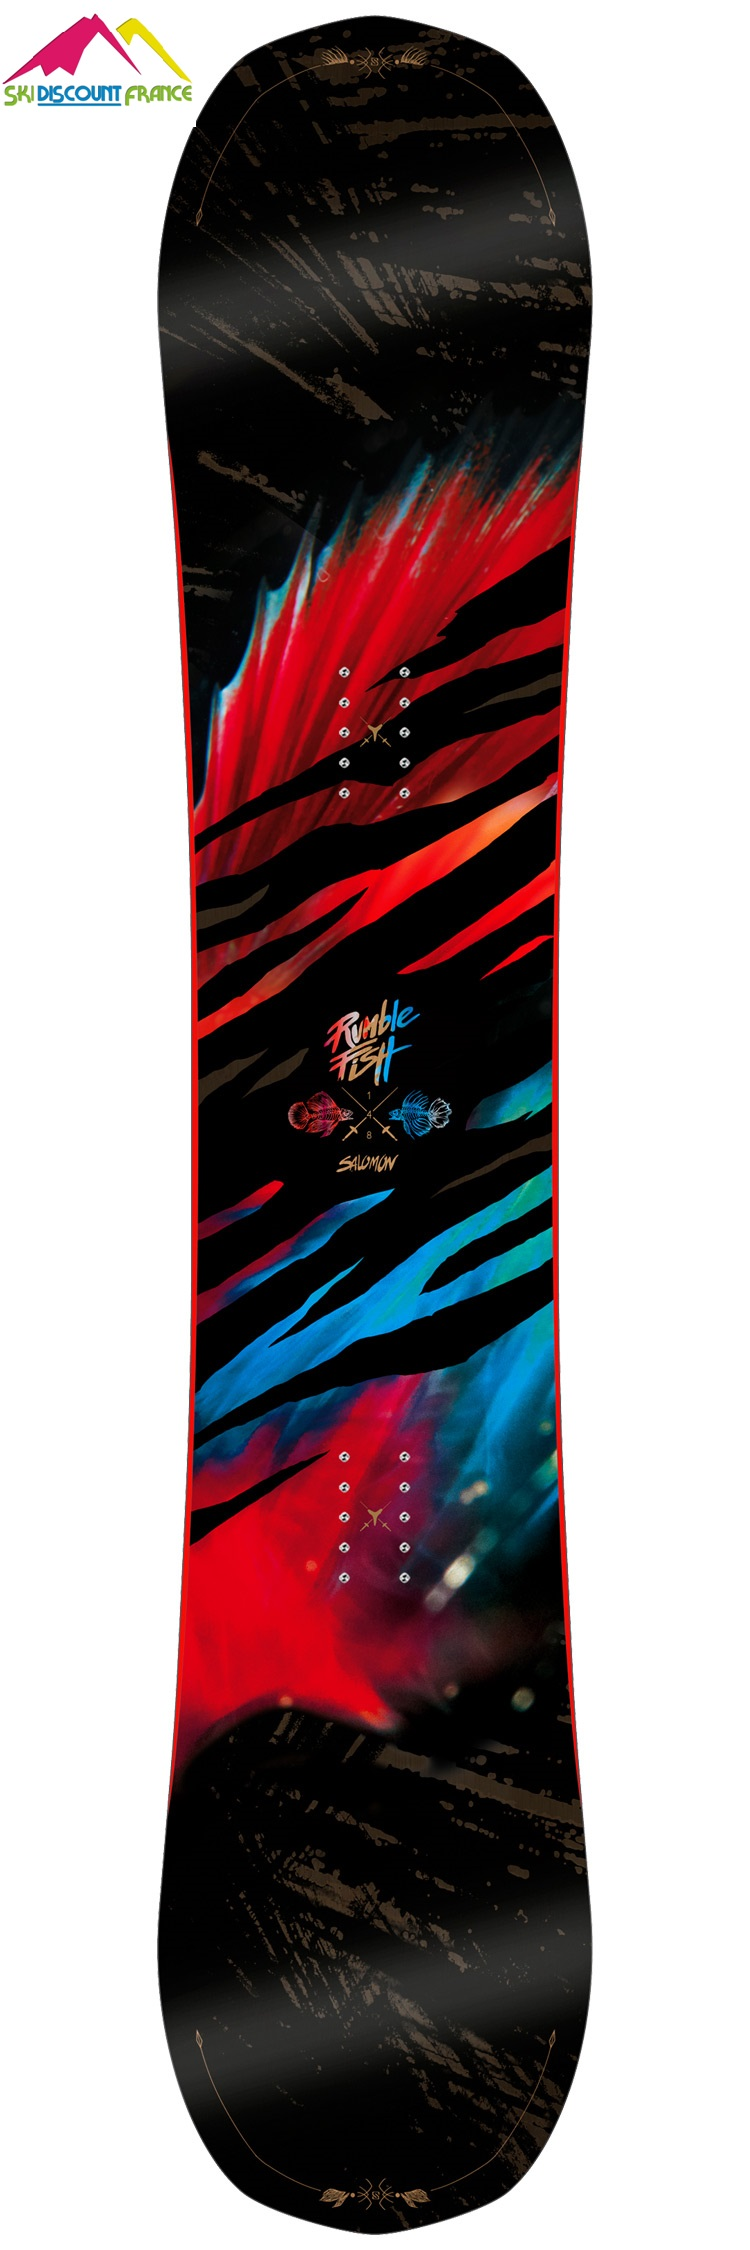 Snowboard Neuf Salomon Rumble